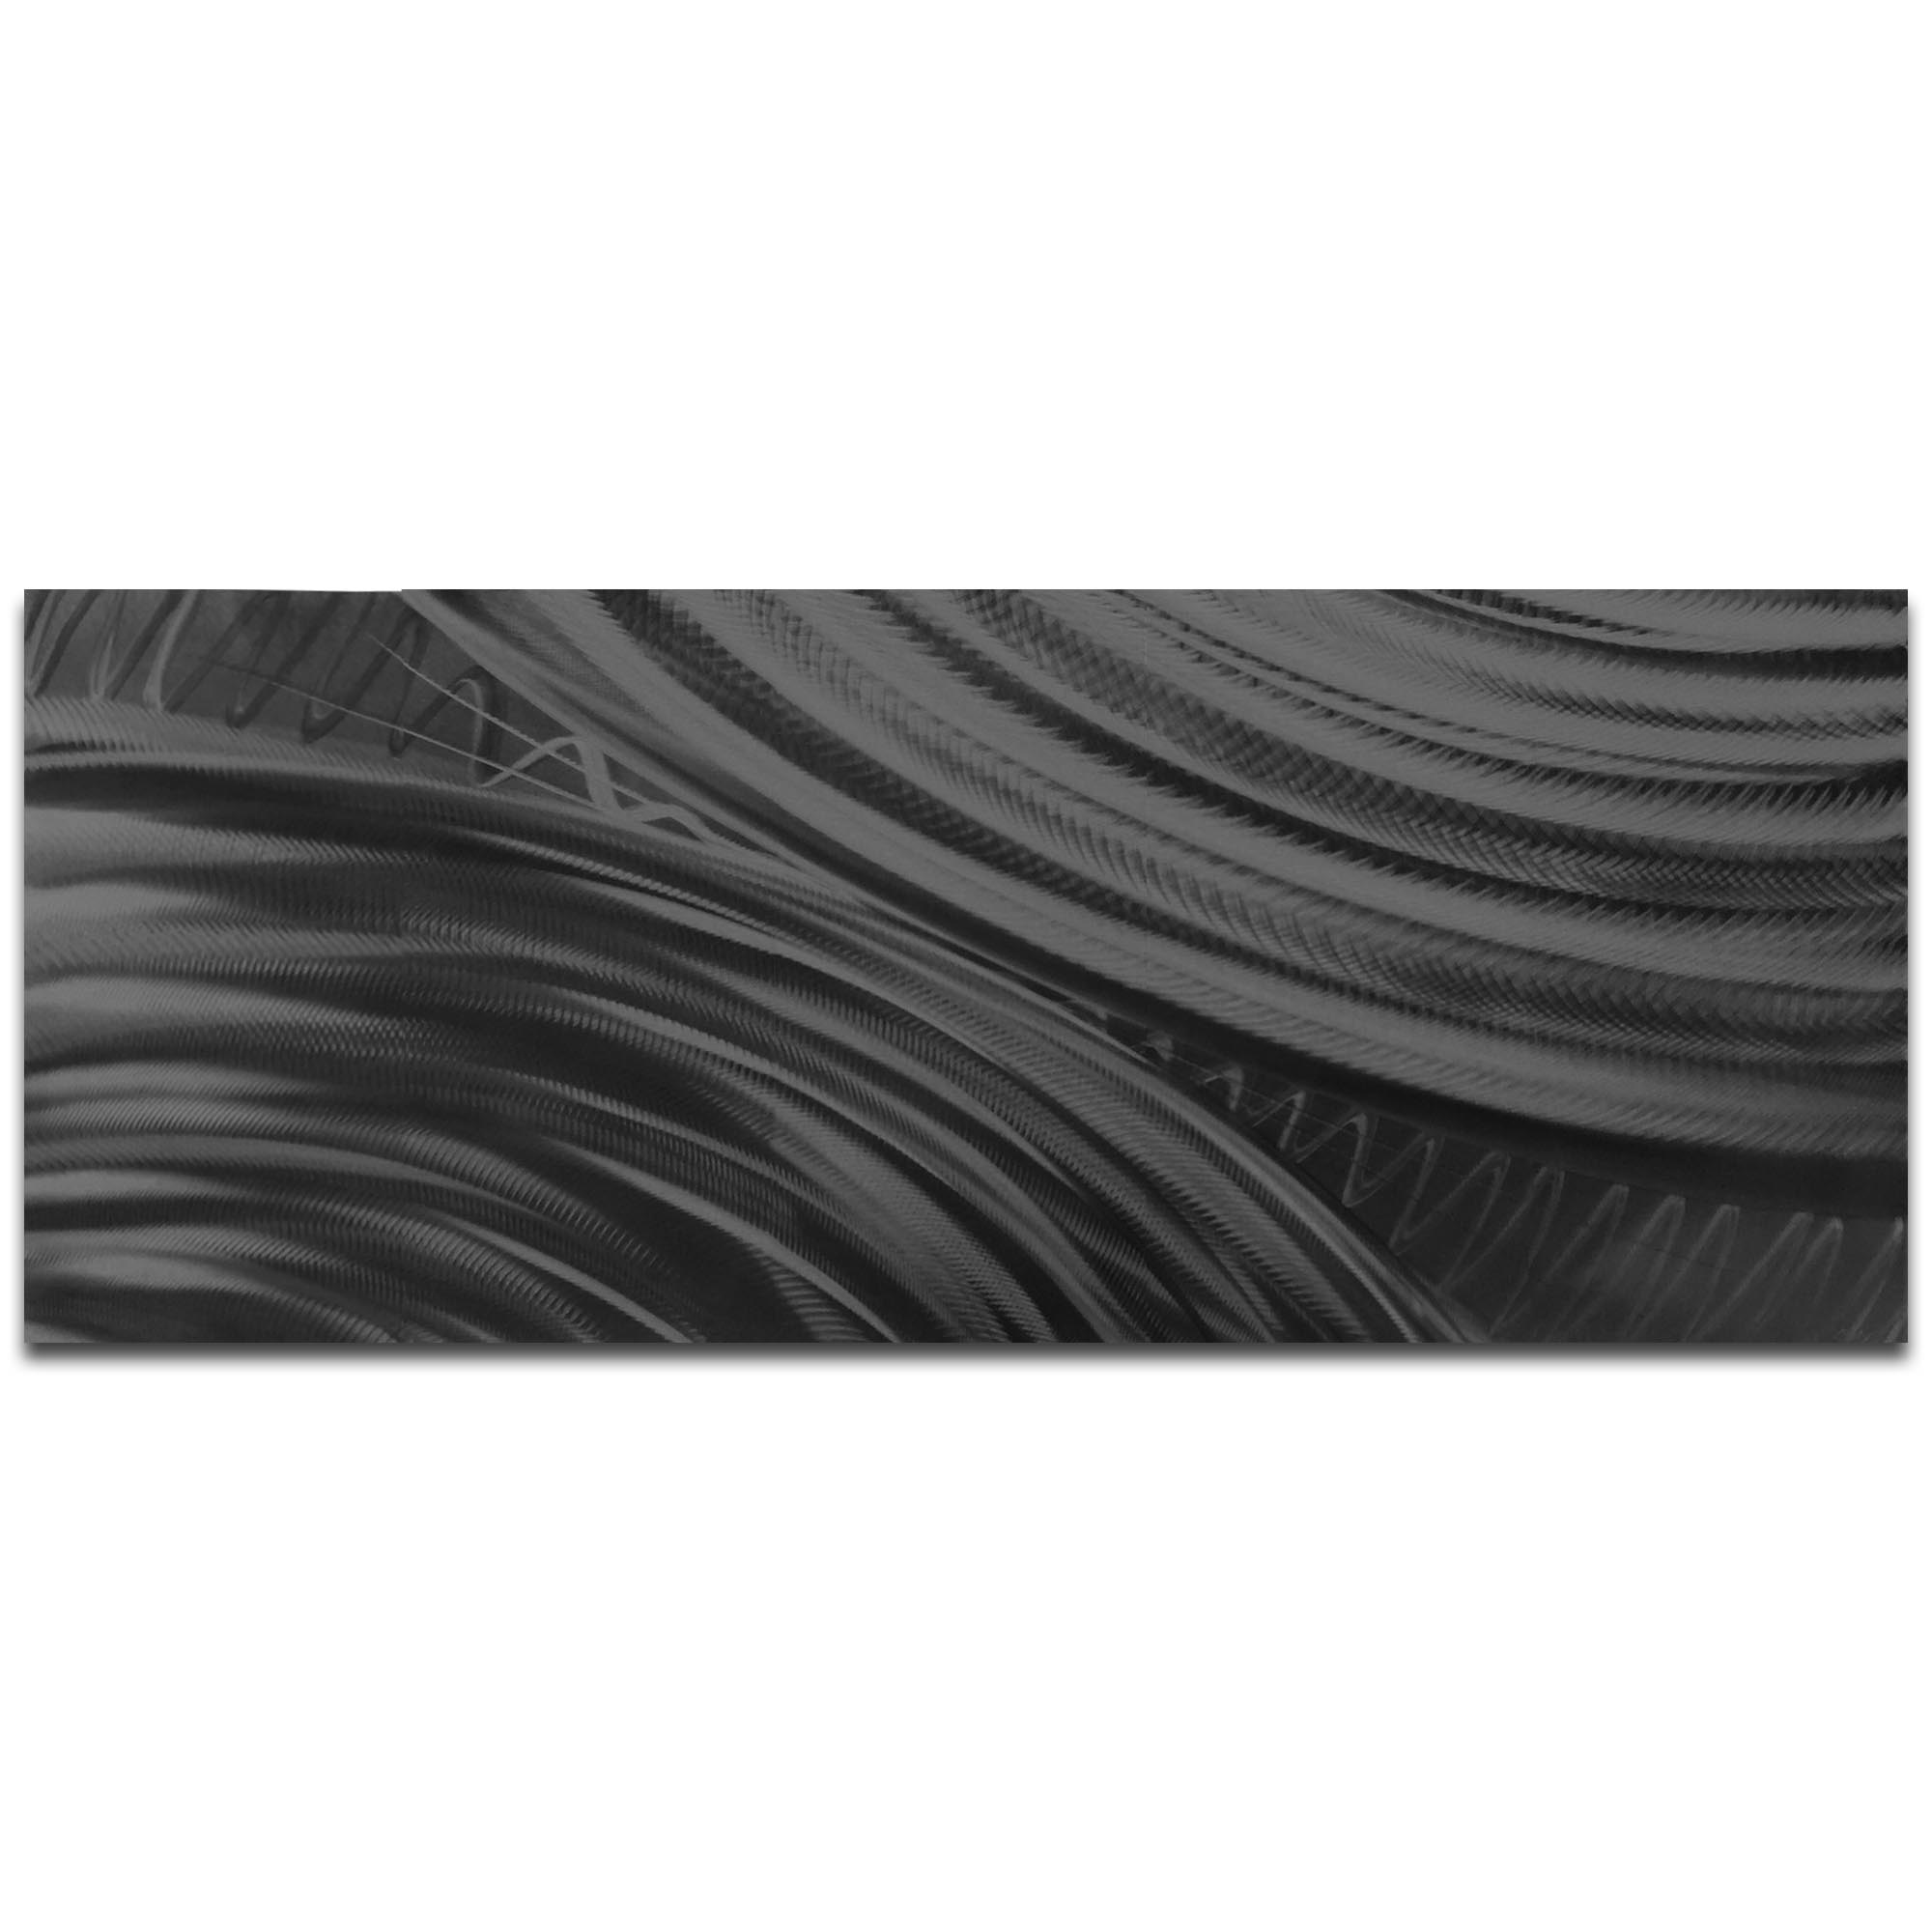 Helena Martin 'Moment of Impact Black' 60in x 24in Original Abstract Art on Ground and Painted Metal